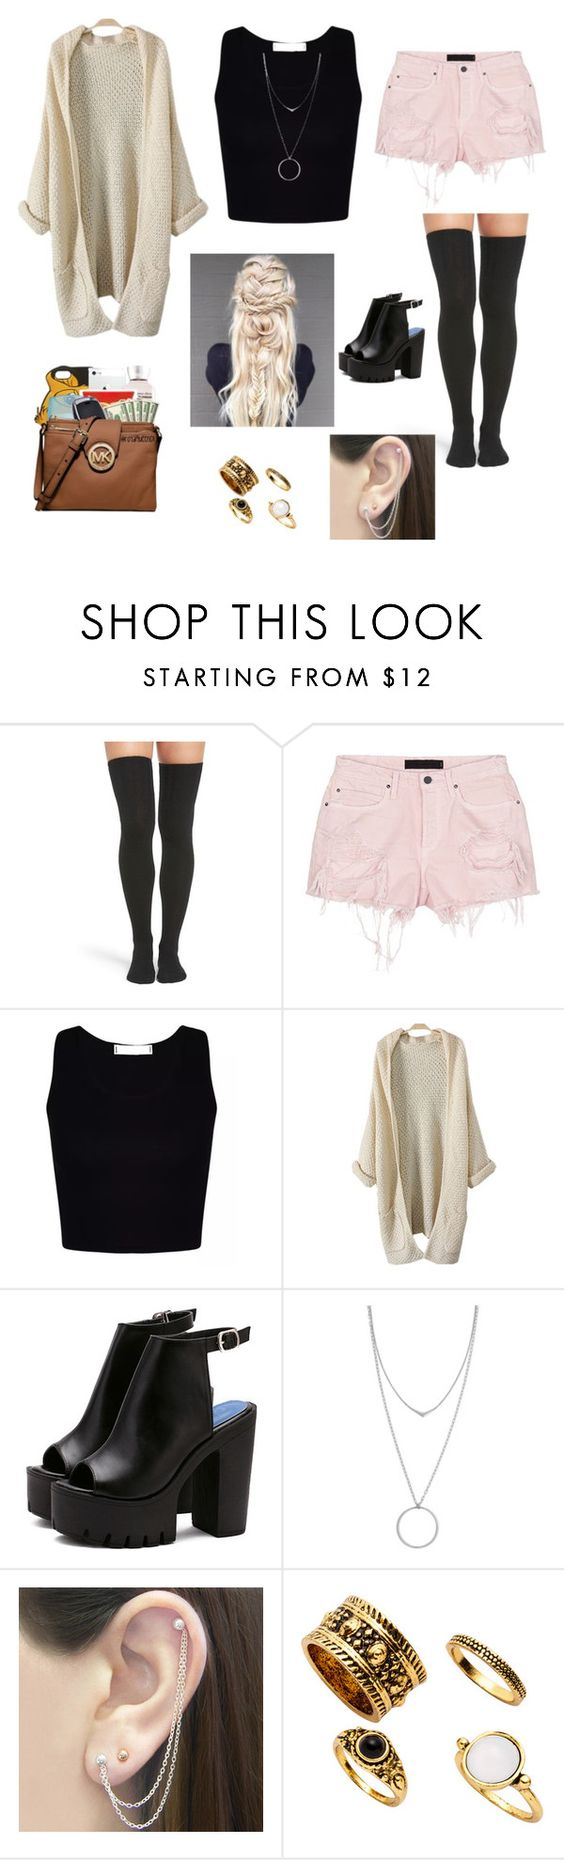 """Untitled #244"" by voluntears ❤ liked on Polyvore featuring Peony & Moss, Alexander Wang, Botkier and Otis Jaxon"